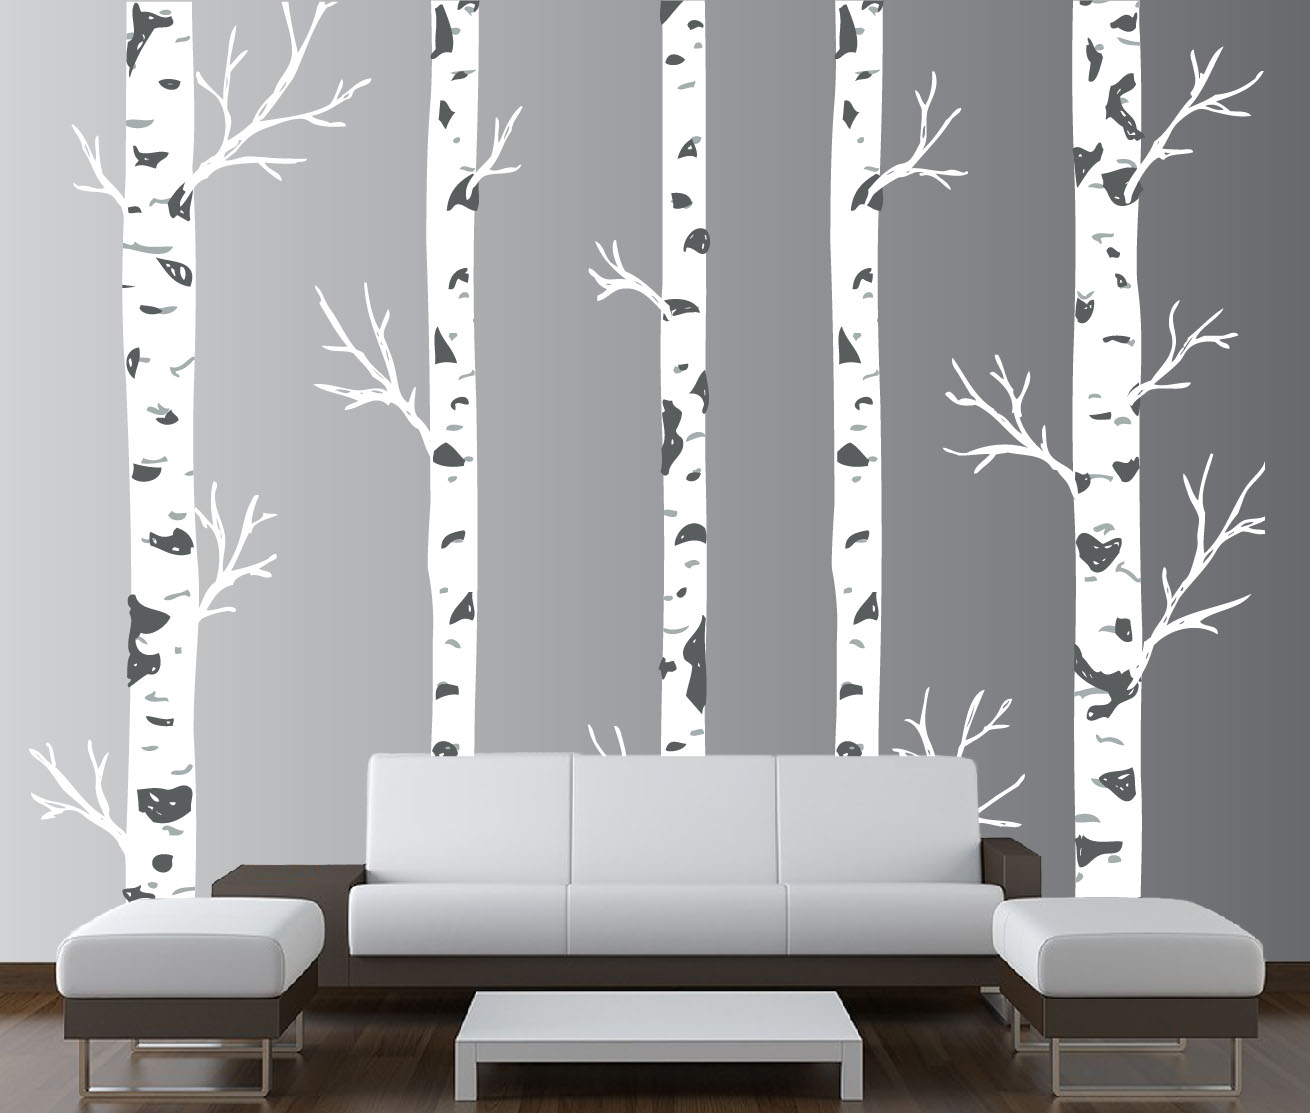 realistic-birch-tree-wall-decal.jpg